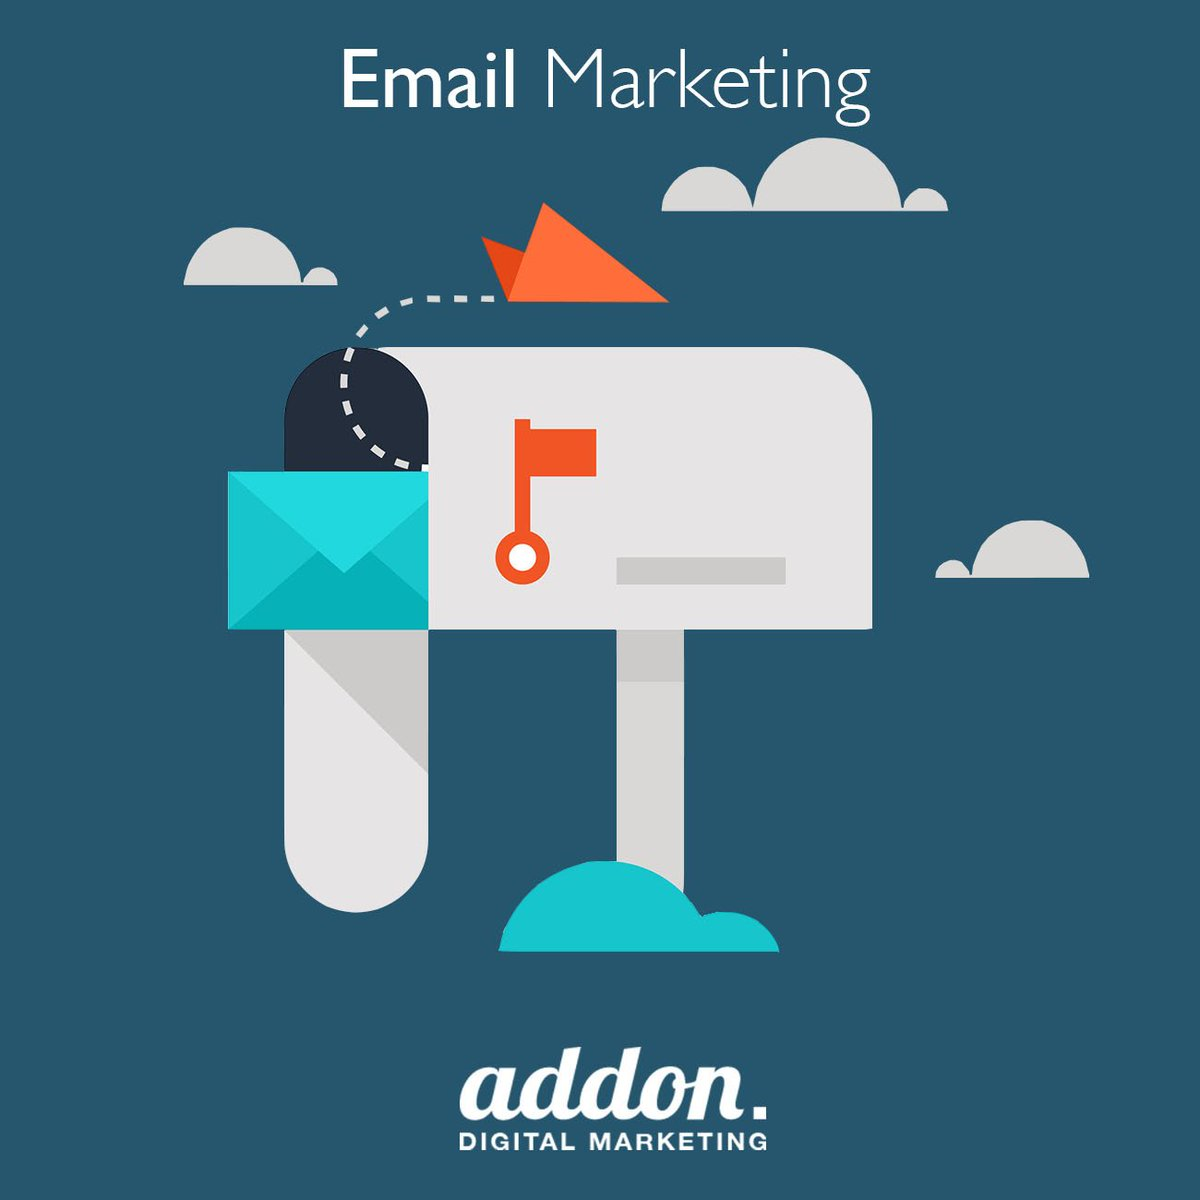 We design, schedule and aggregate world class email campaigns so you don't have to 😉 Our premium package is a once off R1,800 for one email marketing campaign. Contact us here 👉https://t.co/IHTlgXU2OW #addon #addondigital #digitalmarketing #socialmediamarketing https://t.co/BEMS3Jzqmx